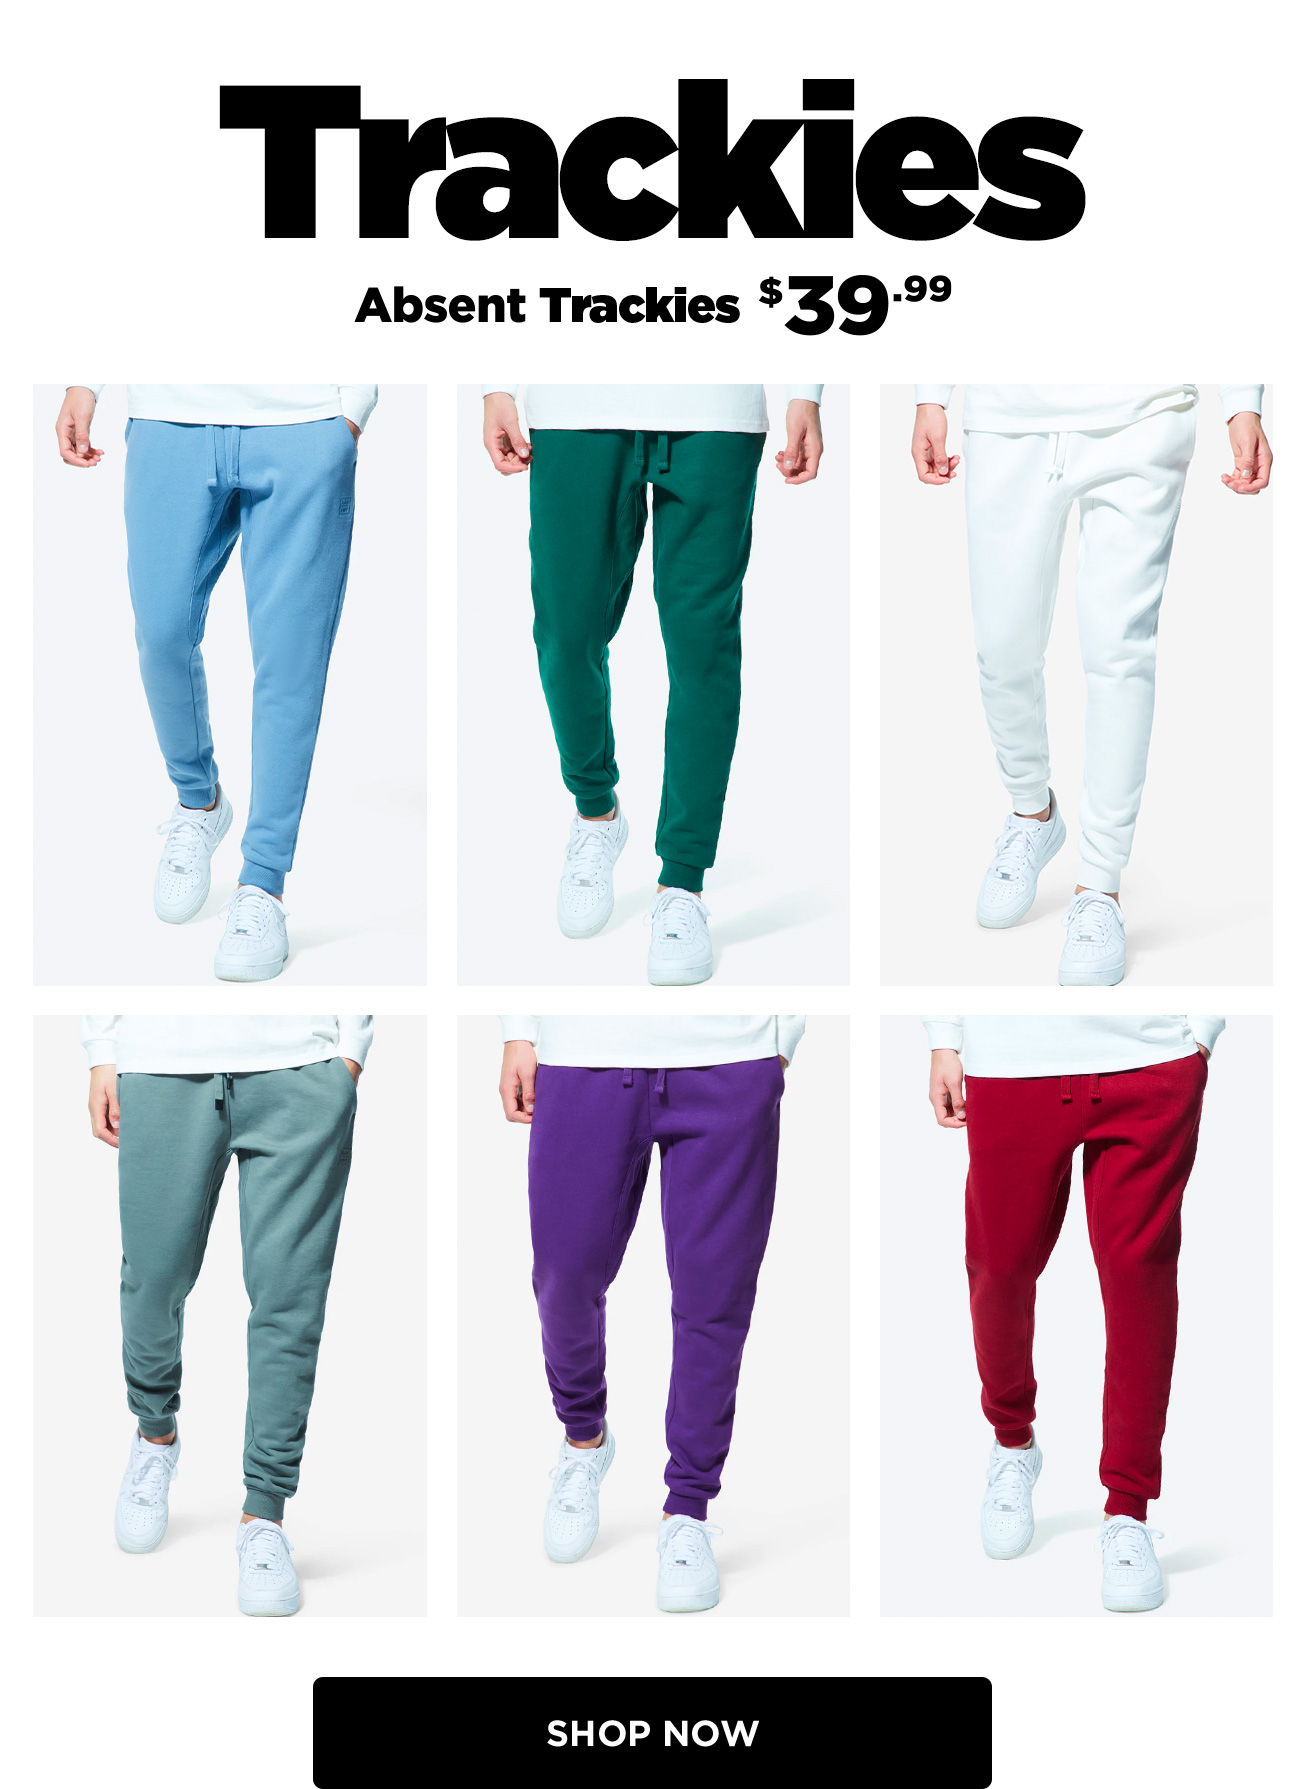 New Trackies $39.99